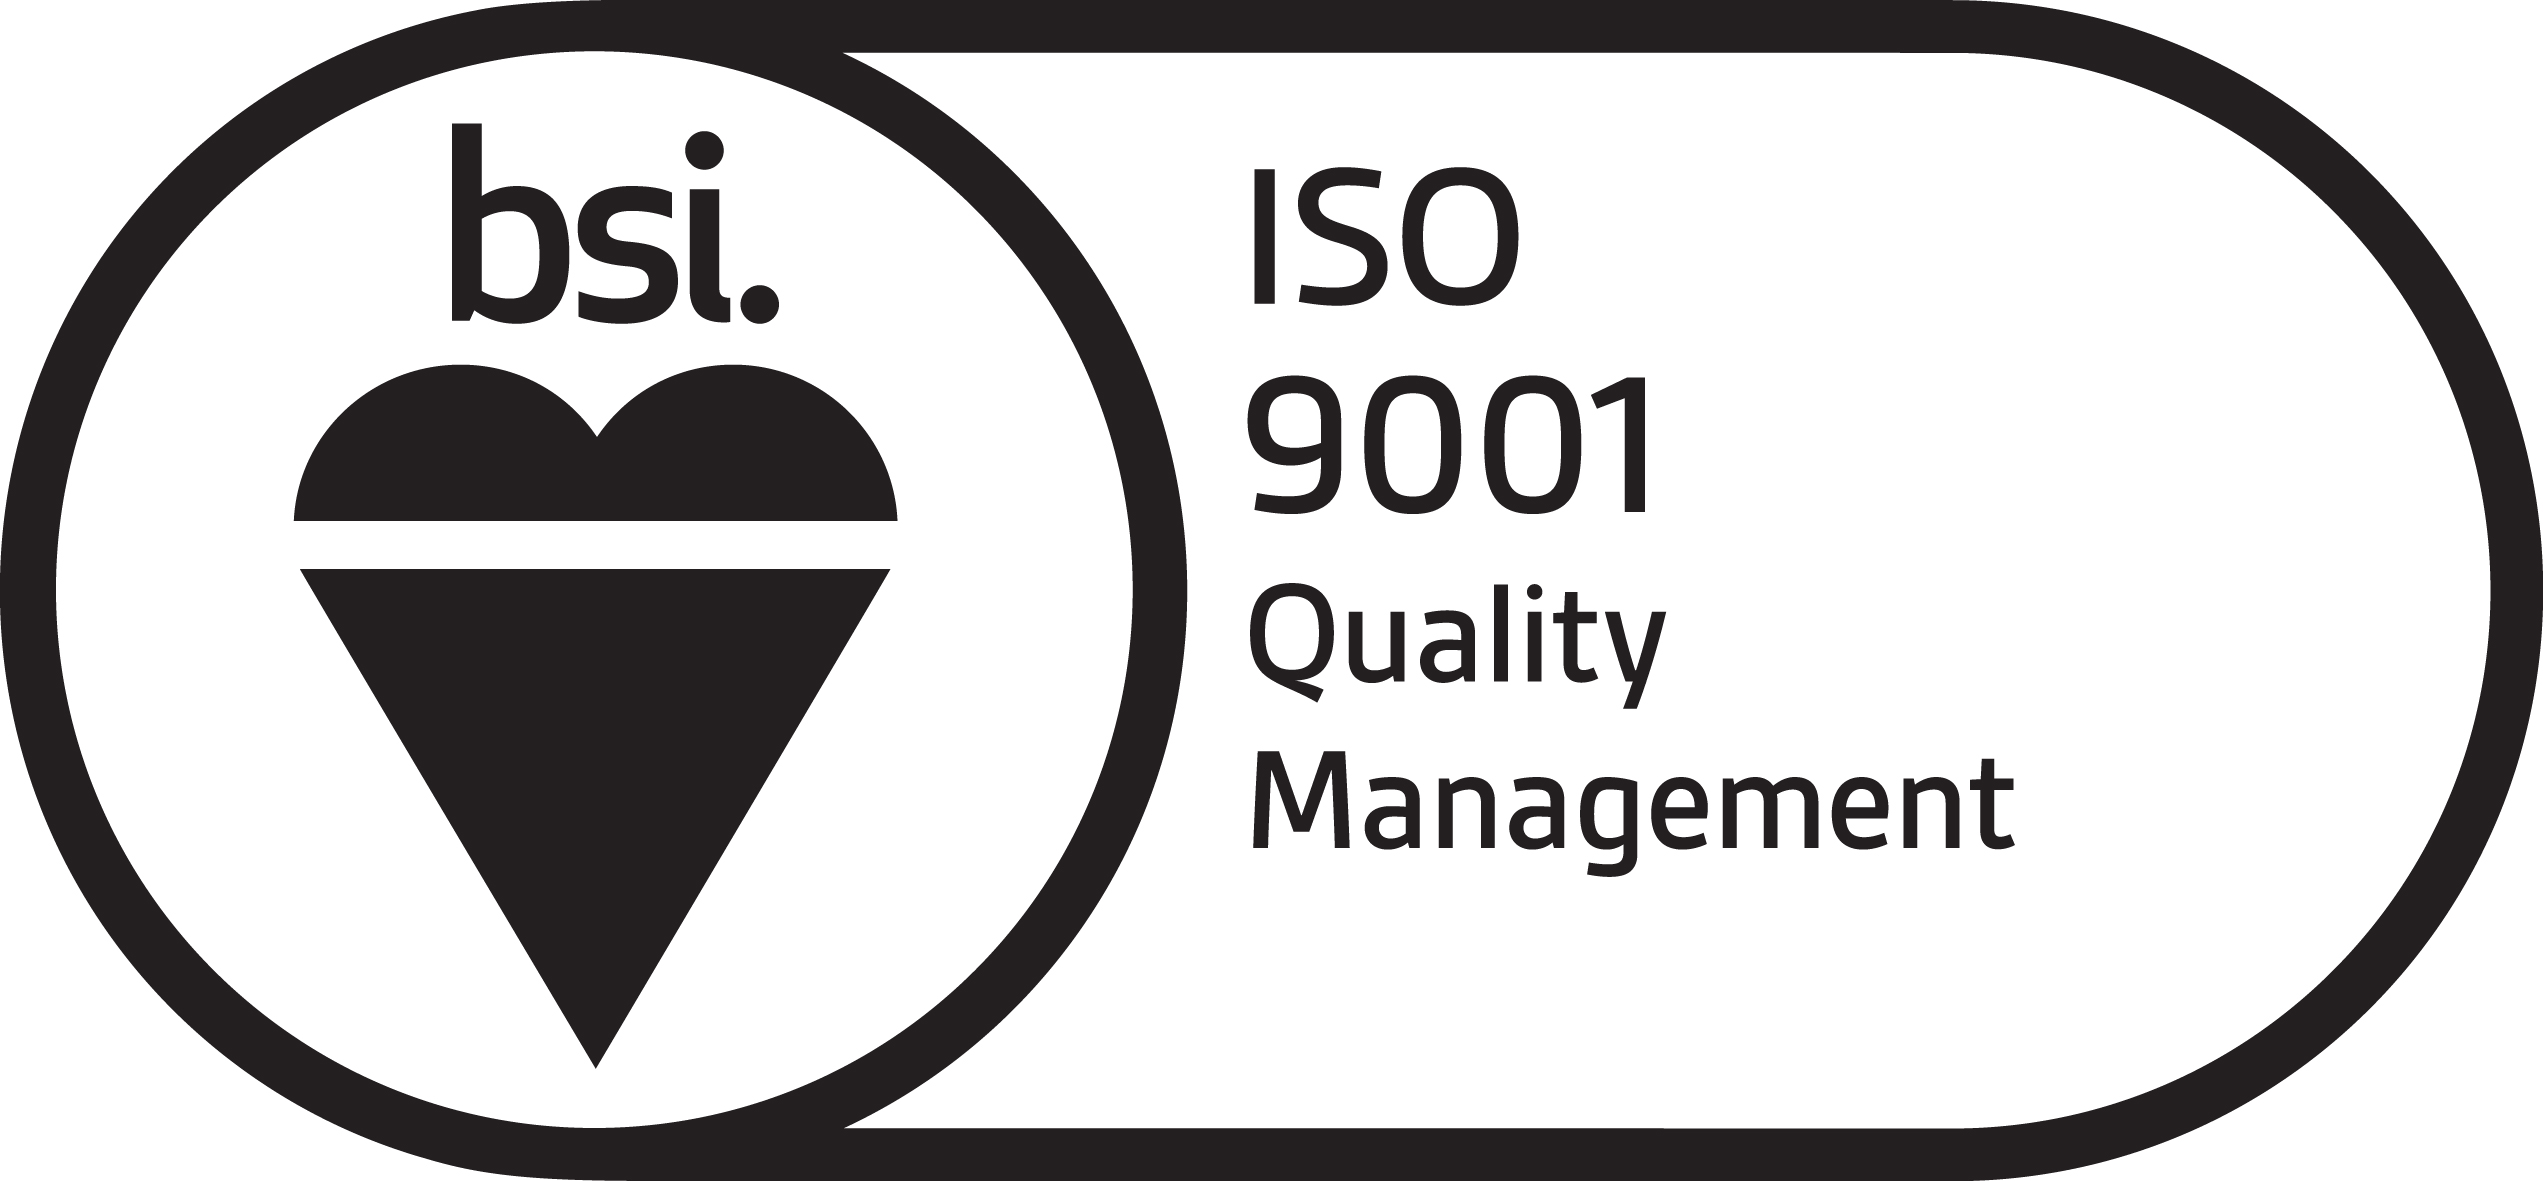 BSI ISO 9001 Quality management.